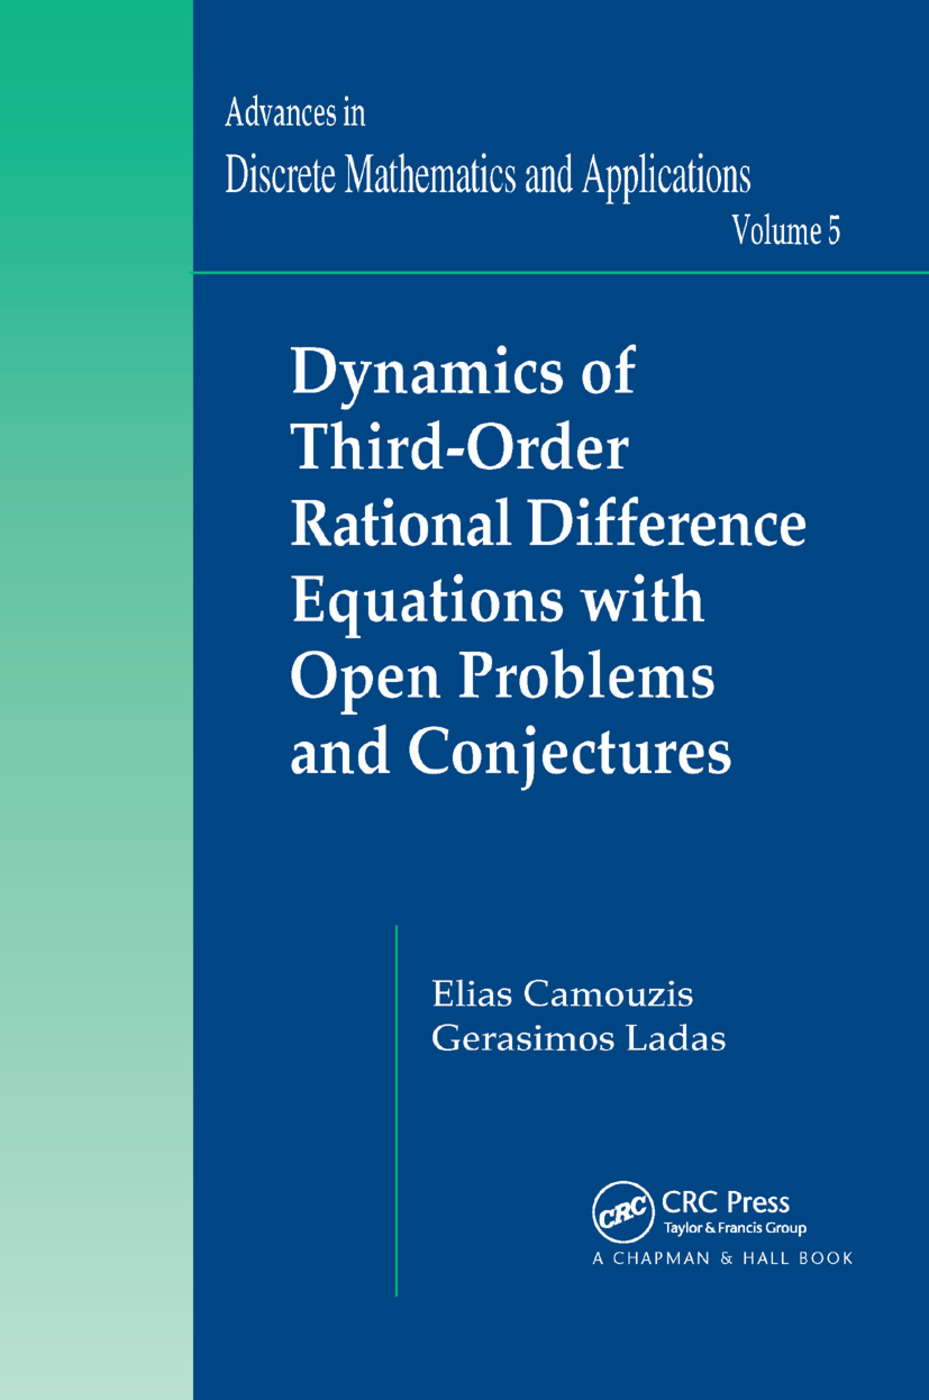 Dynamics of Third-Order Rational Difference Equations with Open Problems and Conjectures: 1st Edition (Paperback) book cover